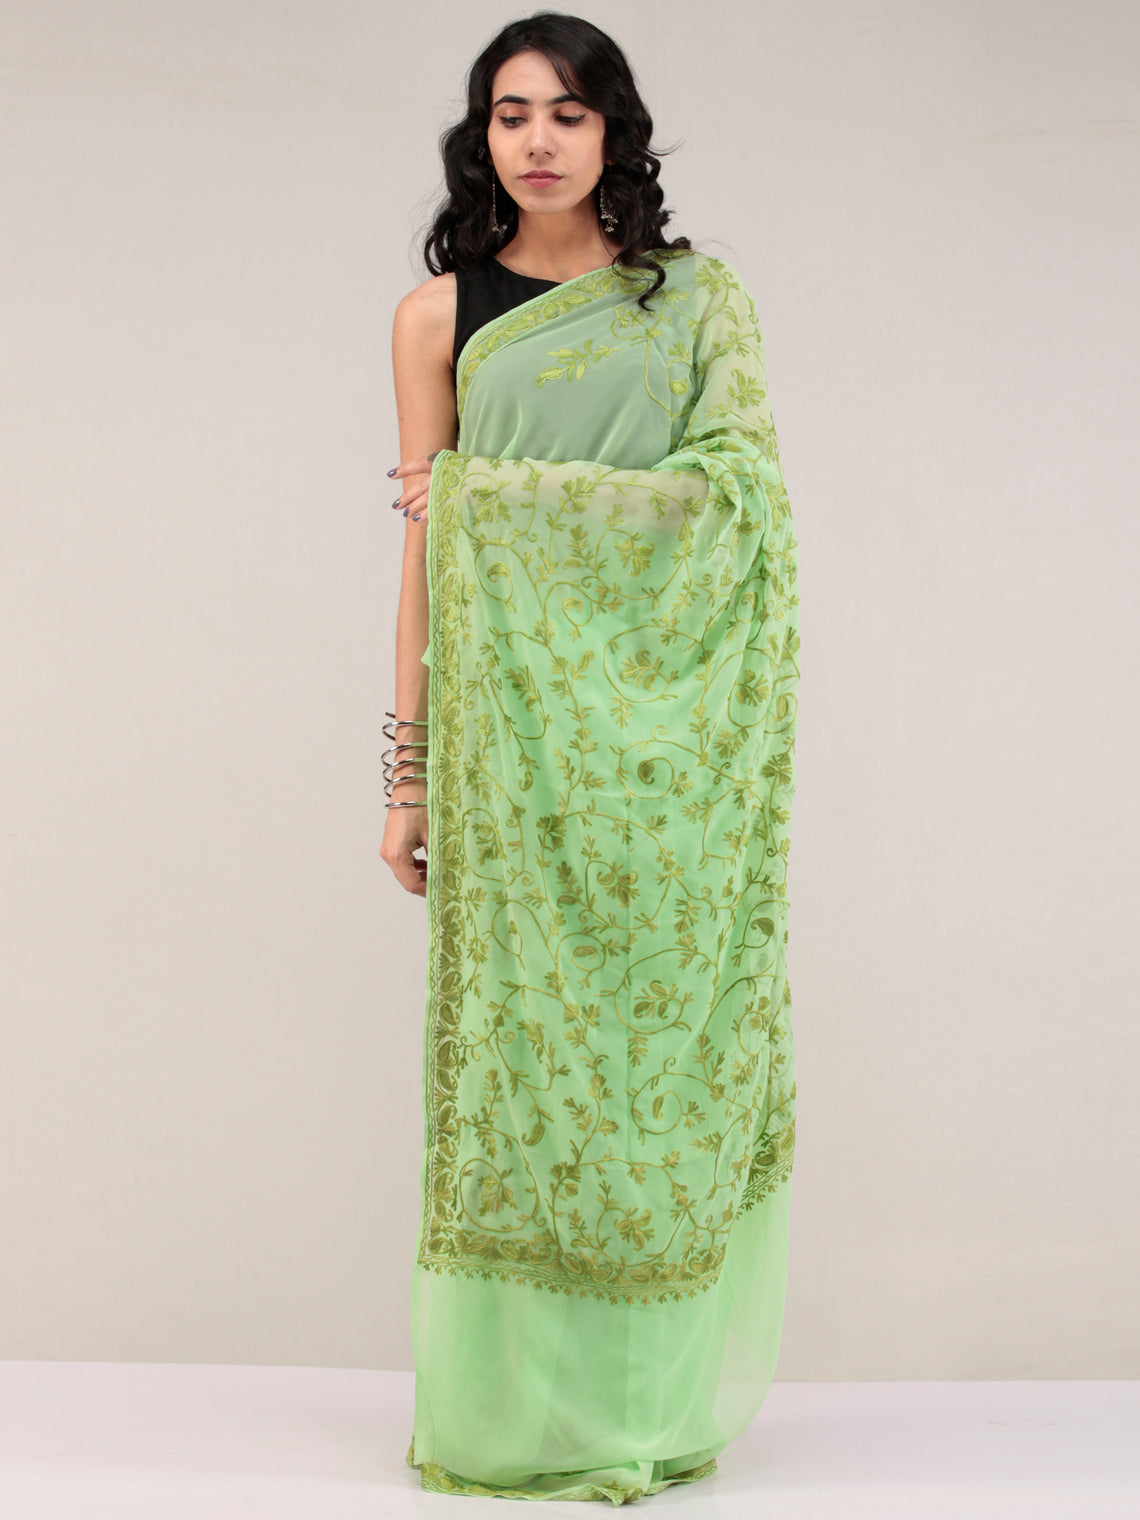 Green Aari Embroidered Georgette Saree From Kashmir - S031704655